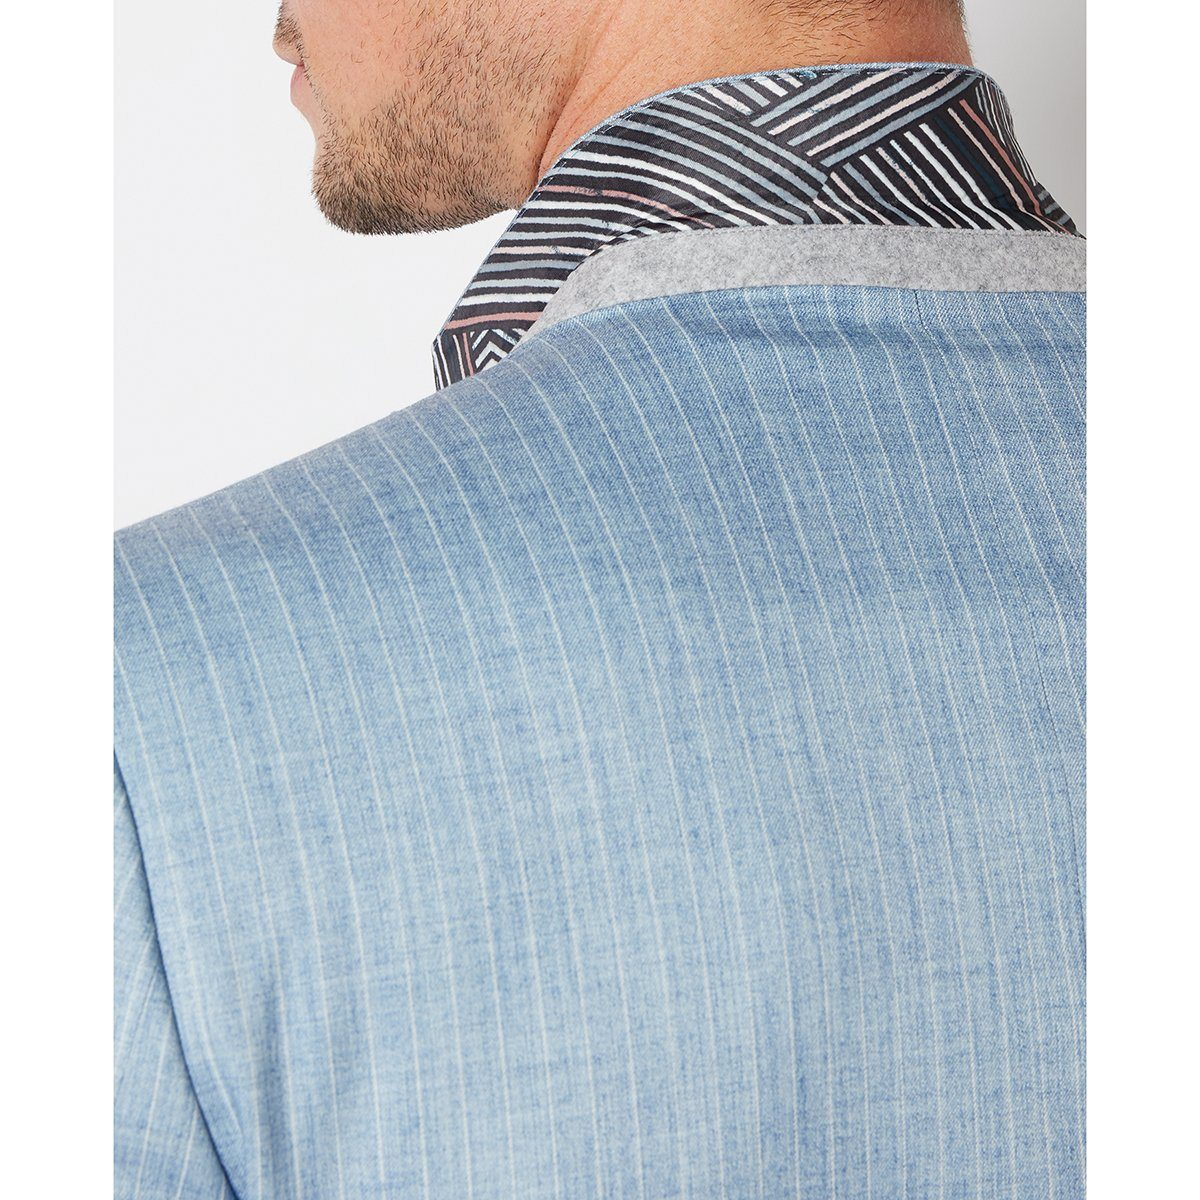 Powder Blue Pinstripe Jacket